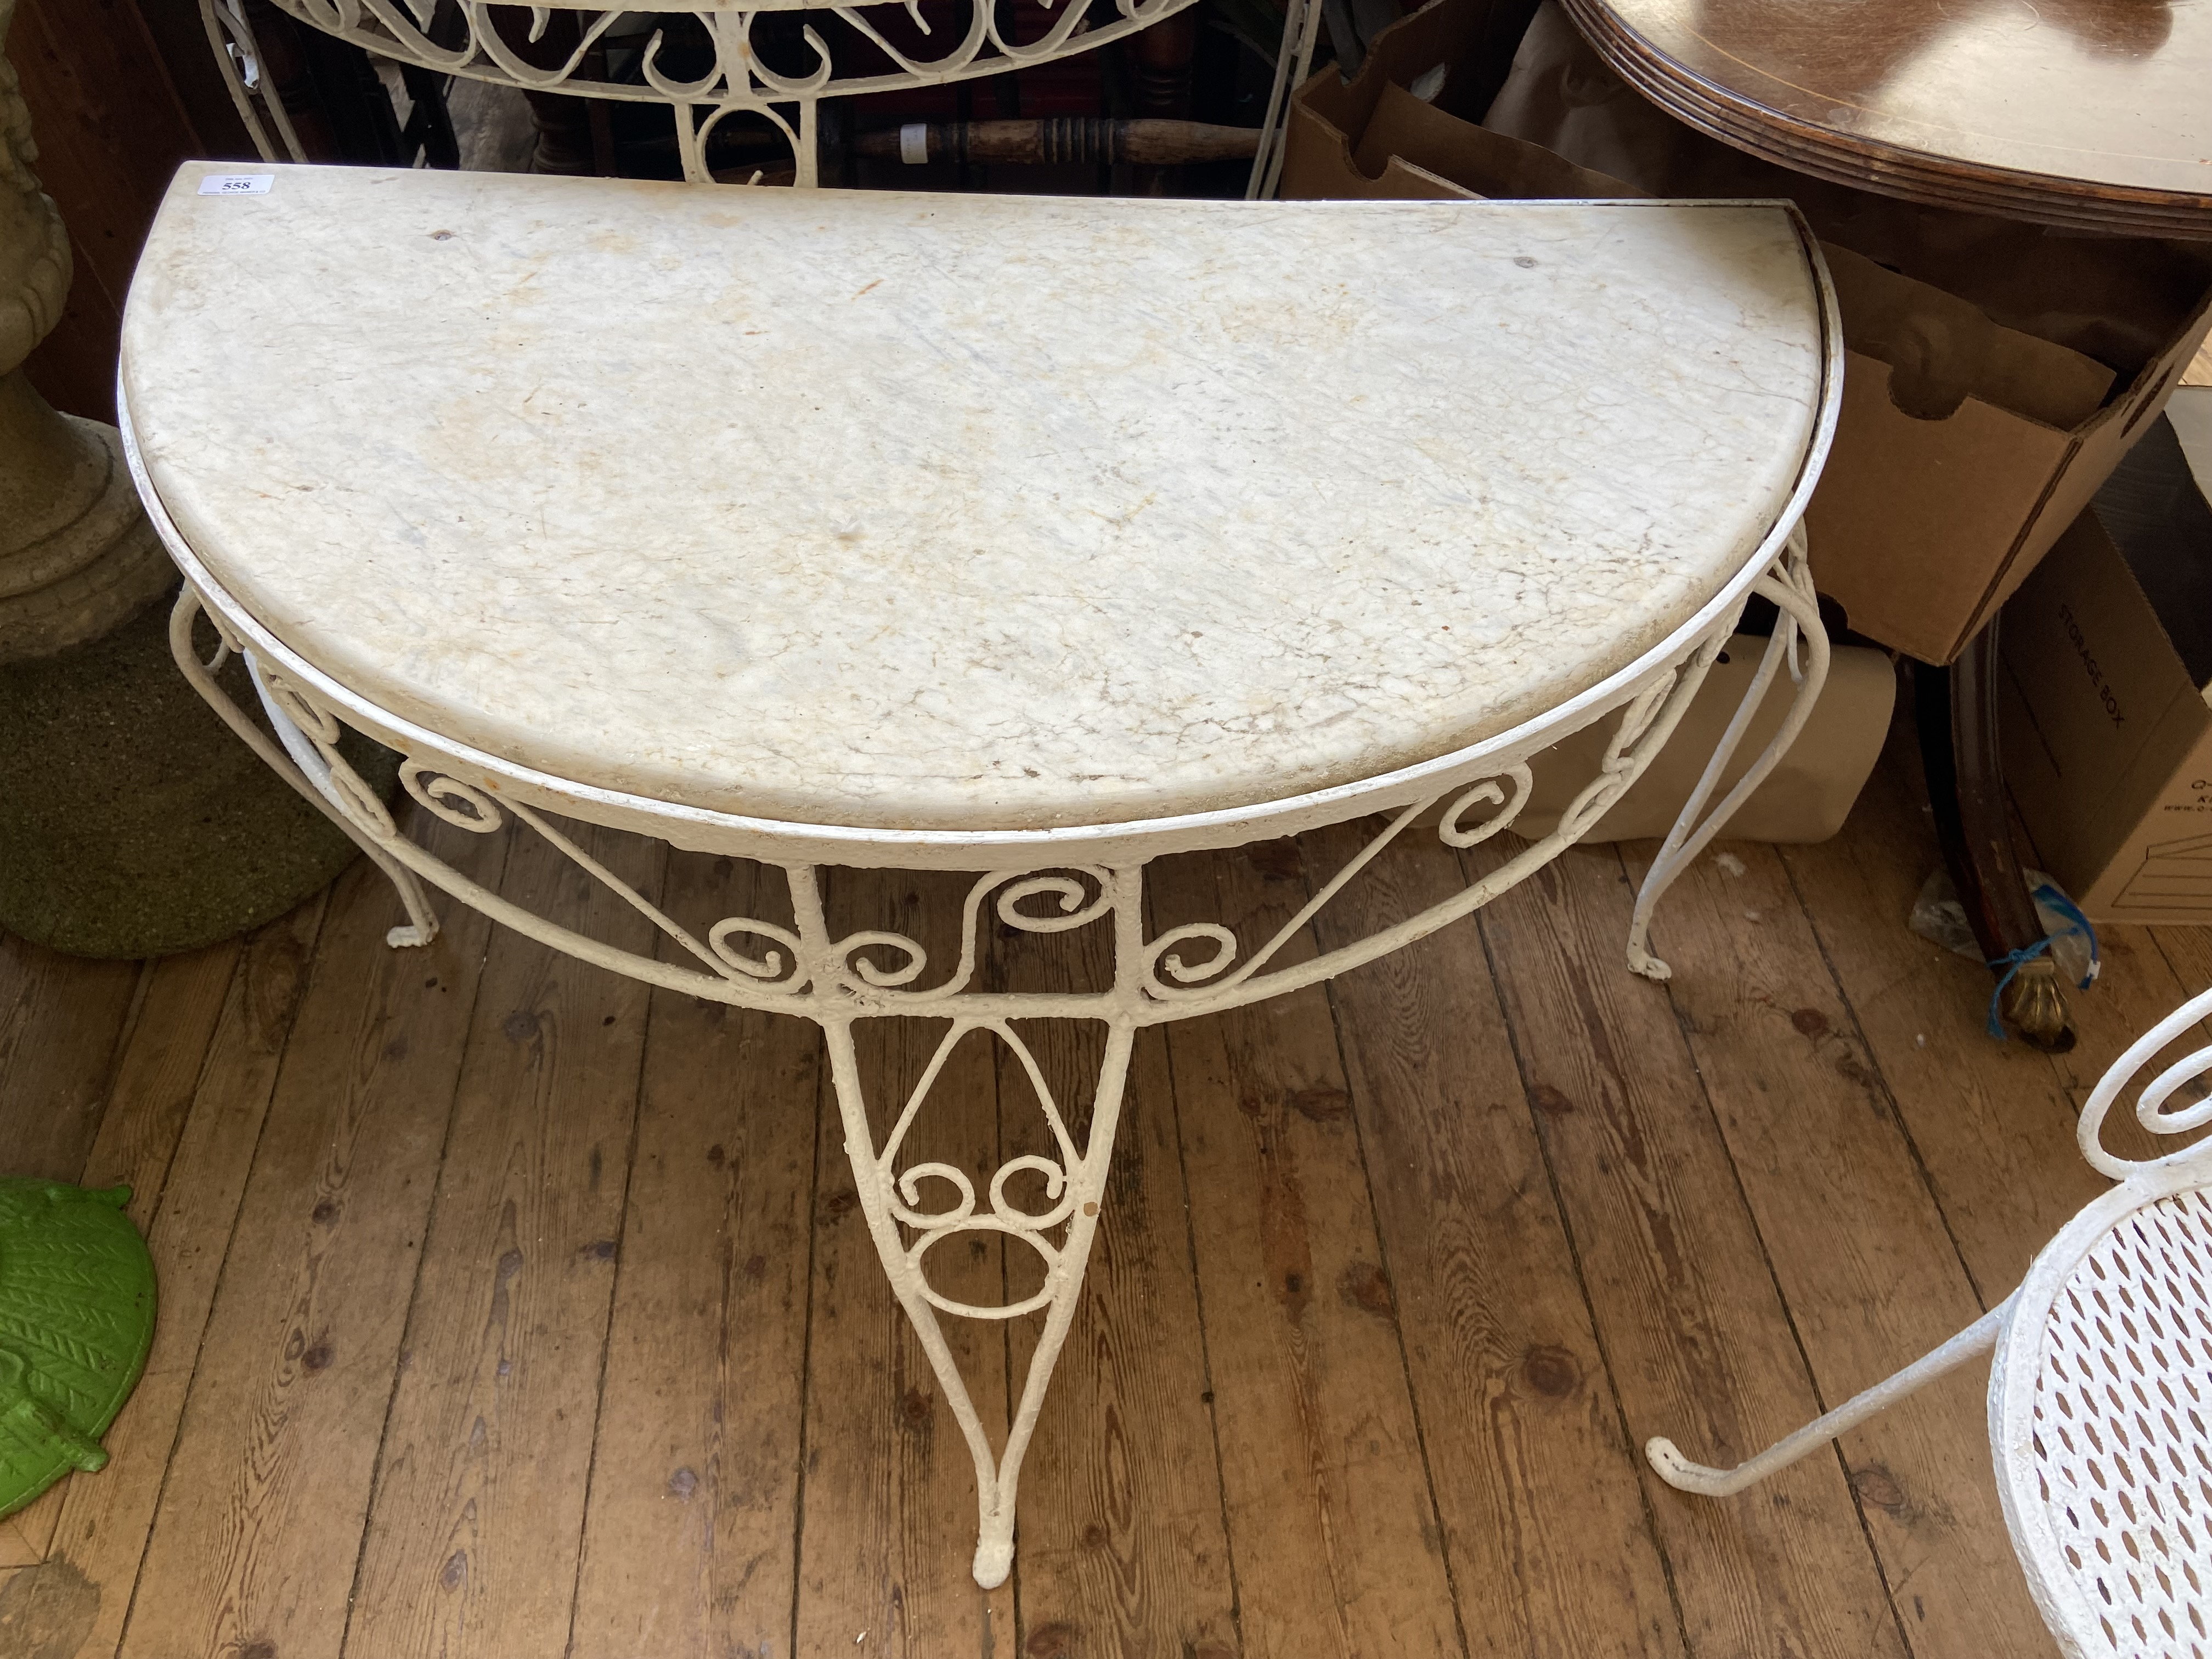 Wrought iron semi-circular garden table inset mottled white marble top